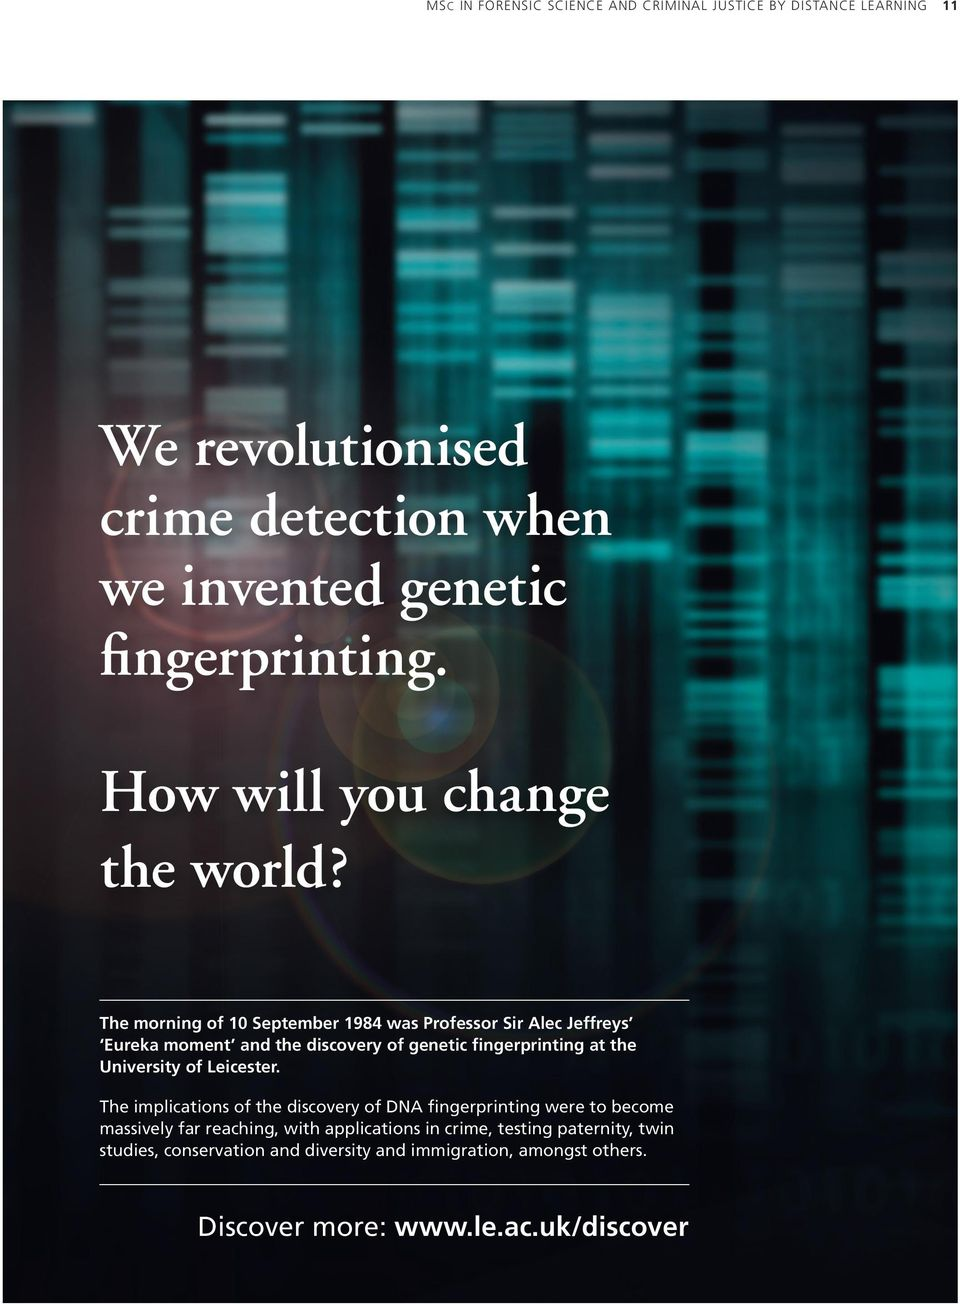 The morning of September 1984 was Professor Sir Alec Jeffreys Eureka moment and the discovery of genetic fingerprinting at the University of.